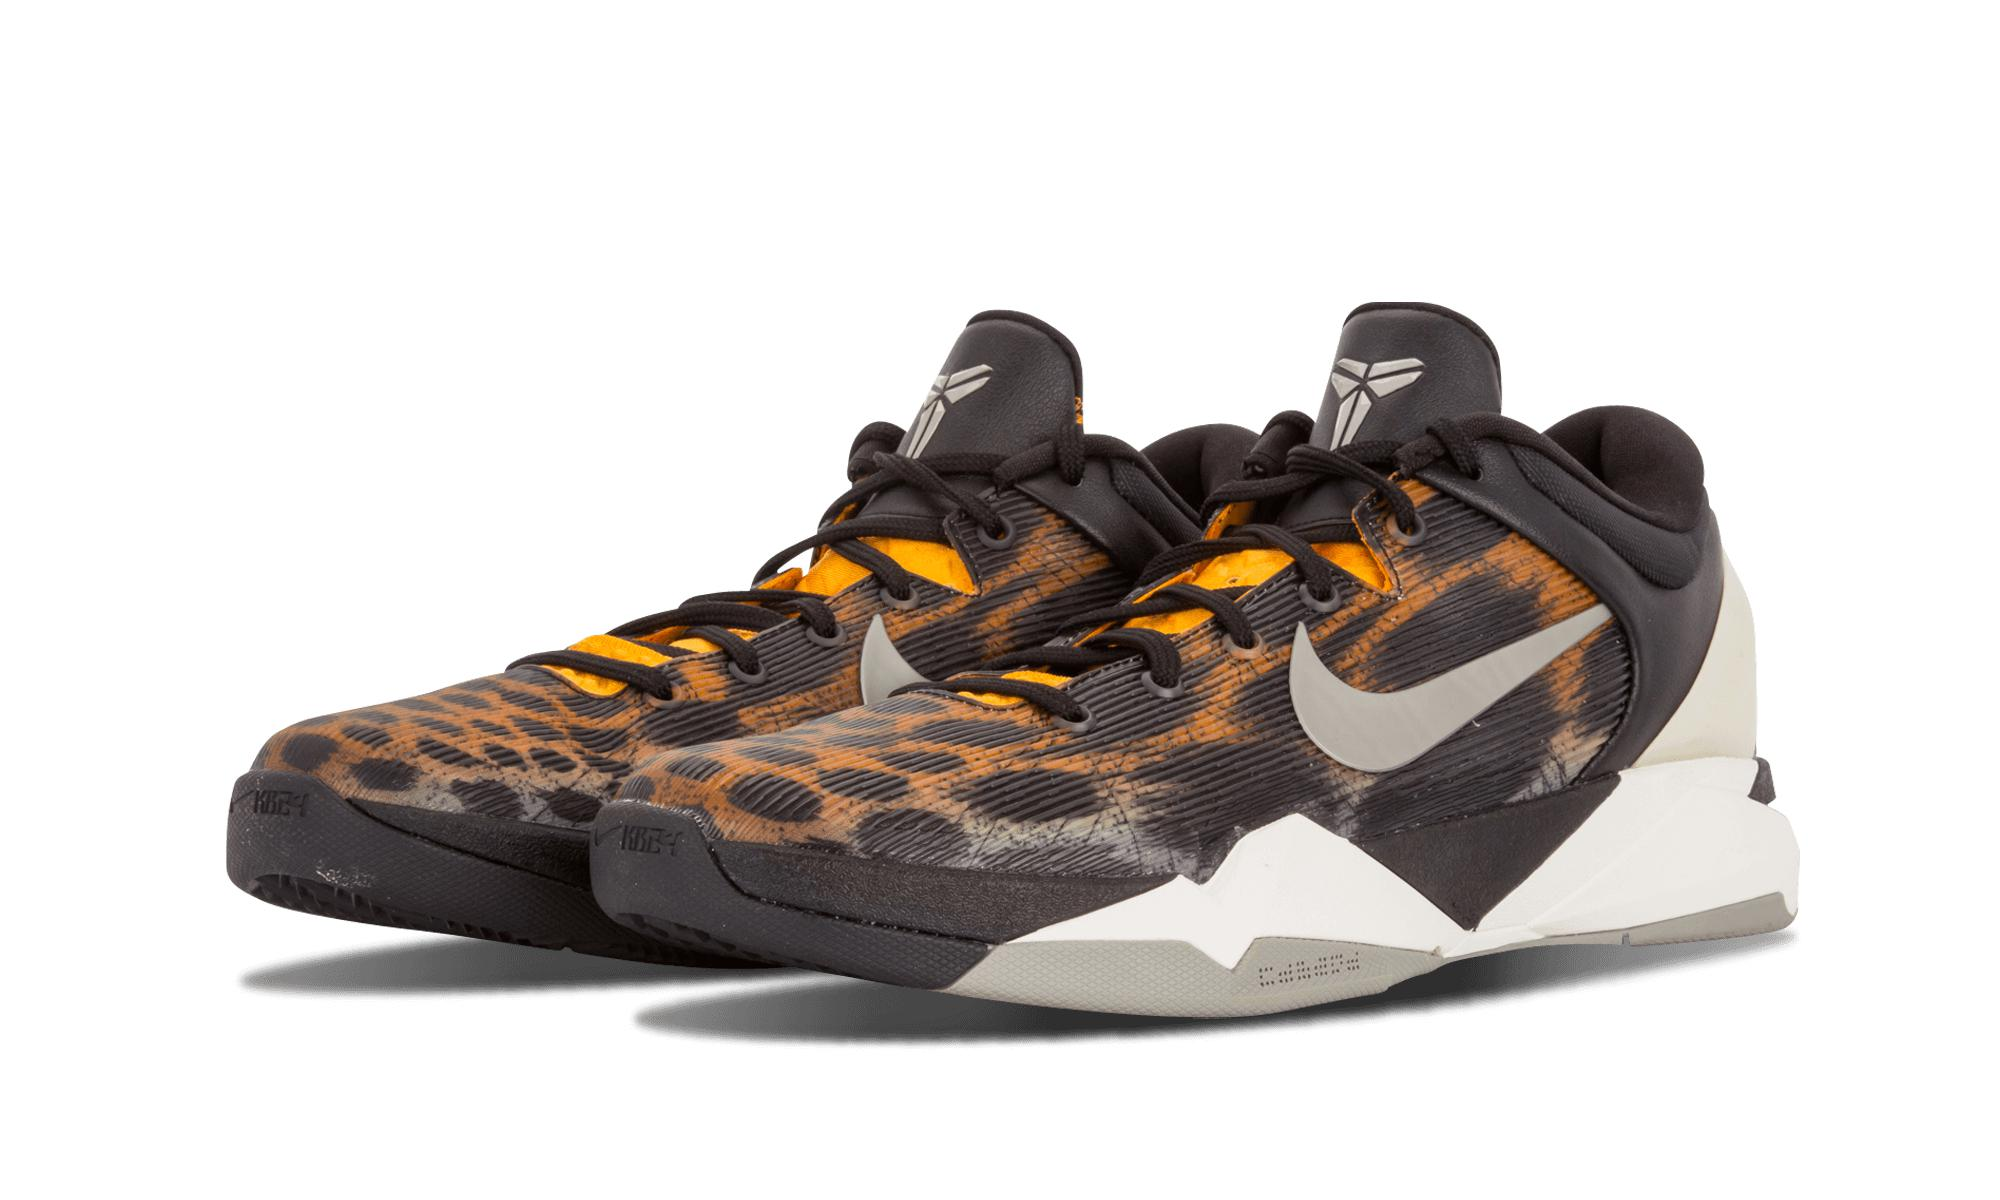 separation shoes c8f96 71a9b Nike - Multicolor Zoom Kobe 7 System for Men - Lyst. View fullscreen